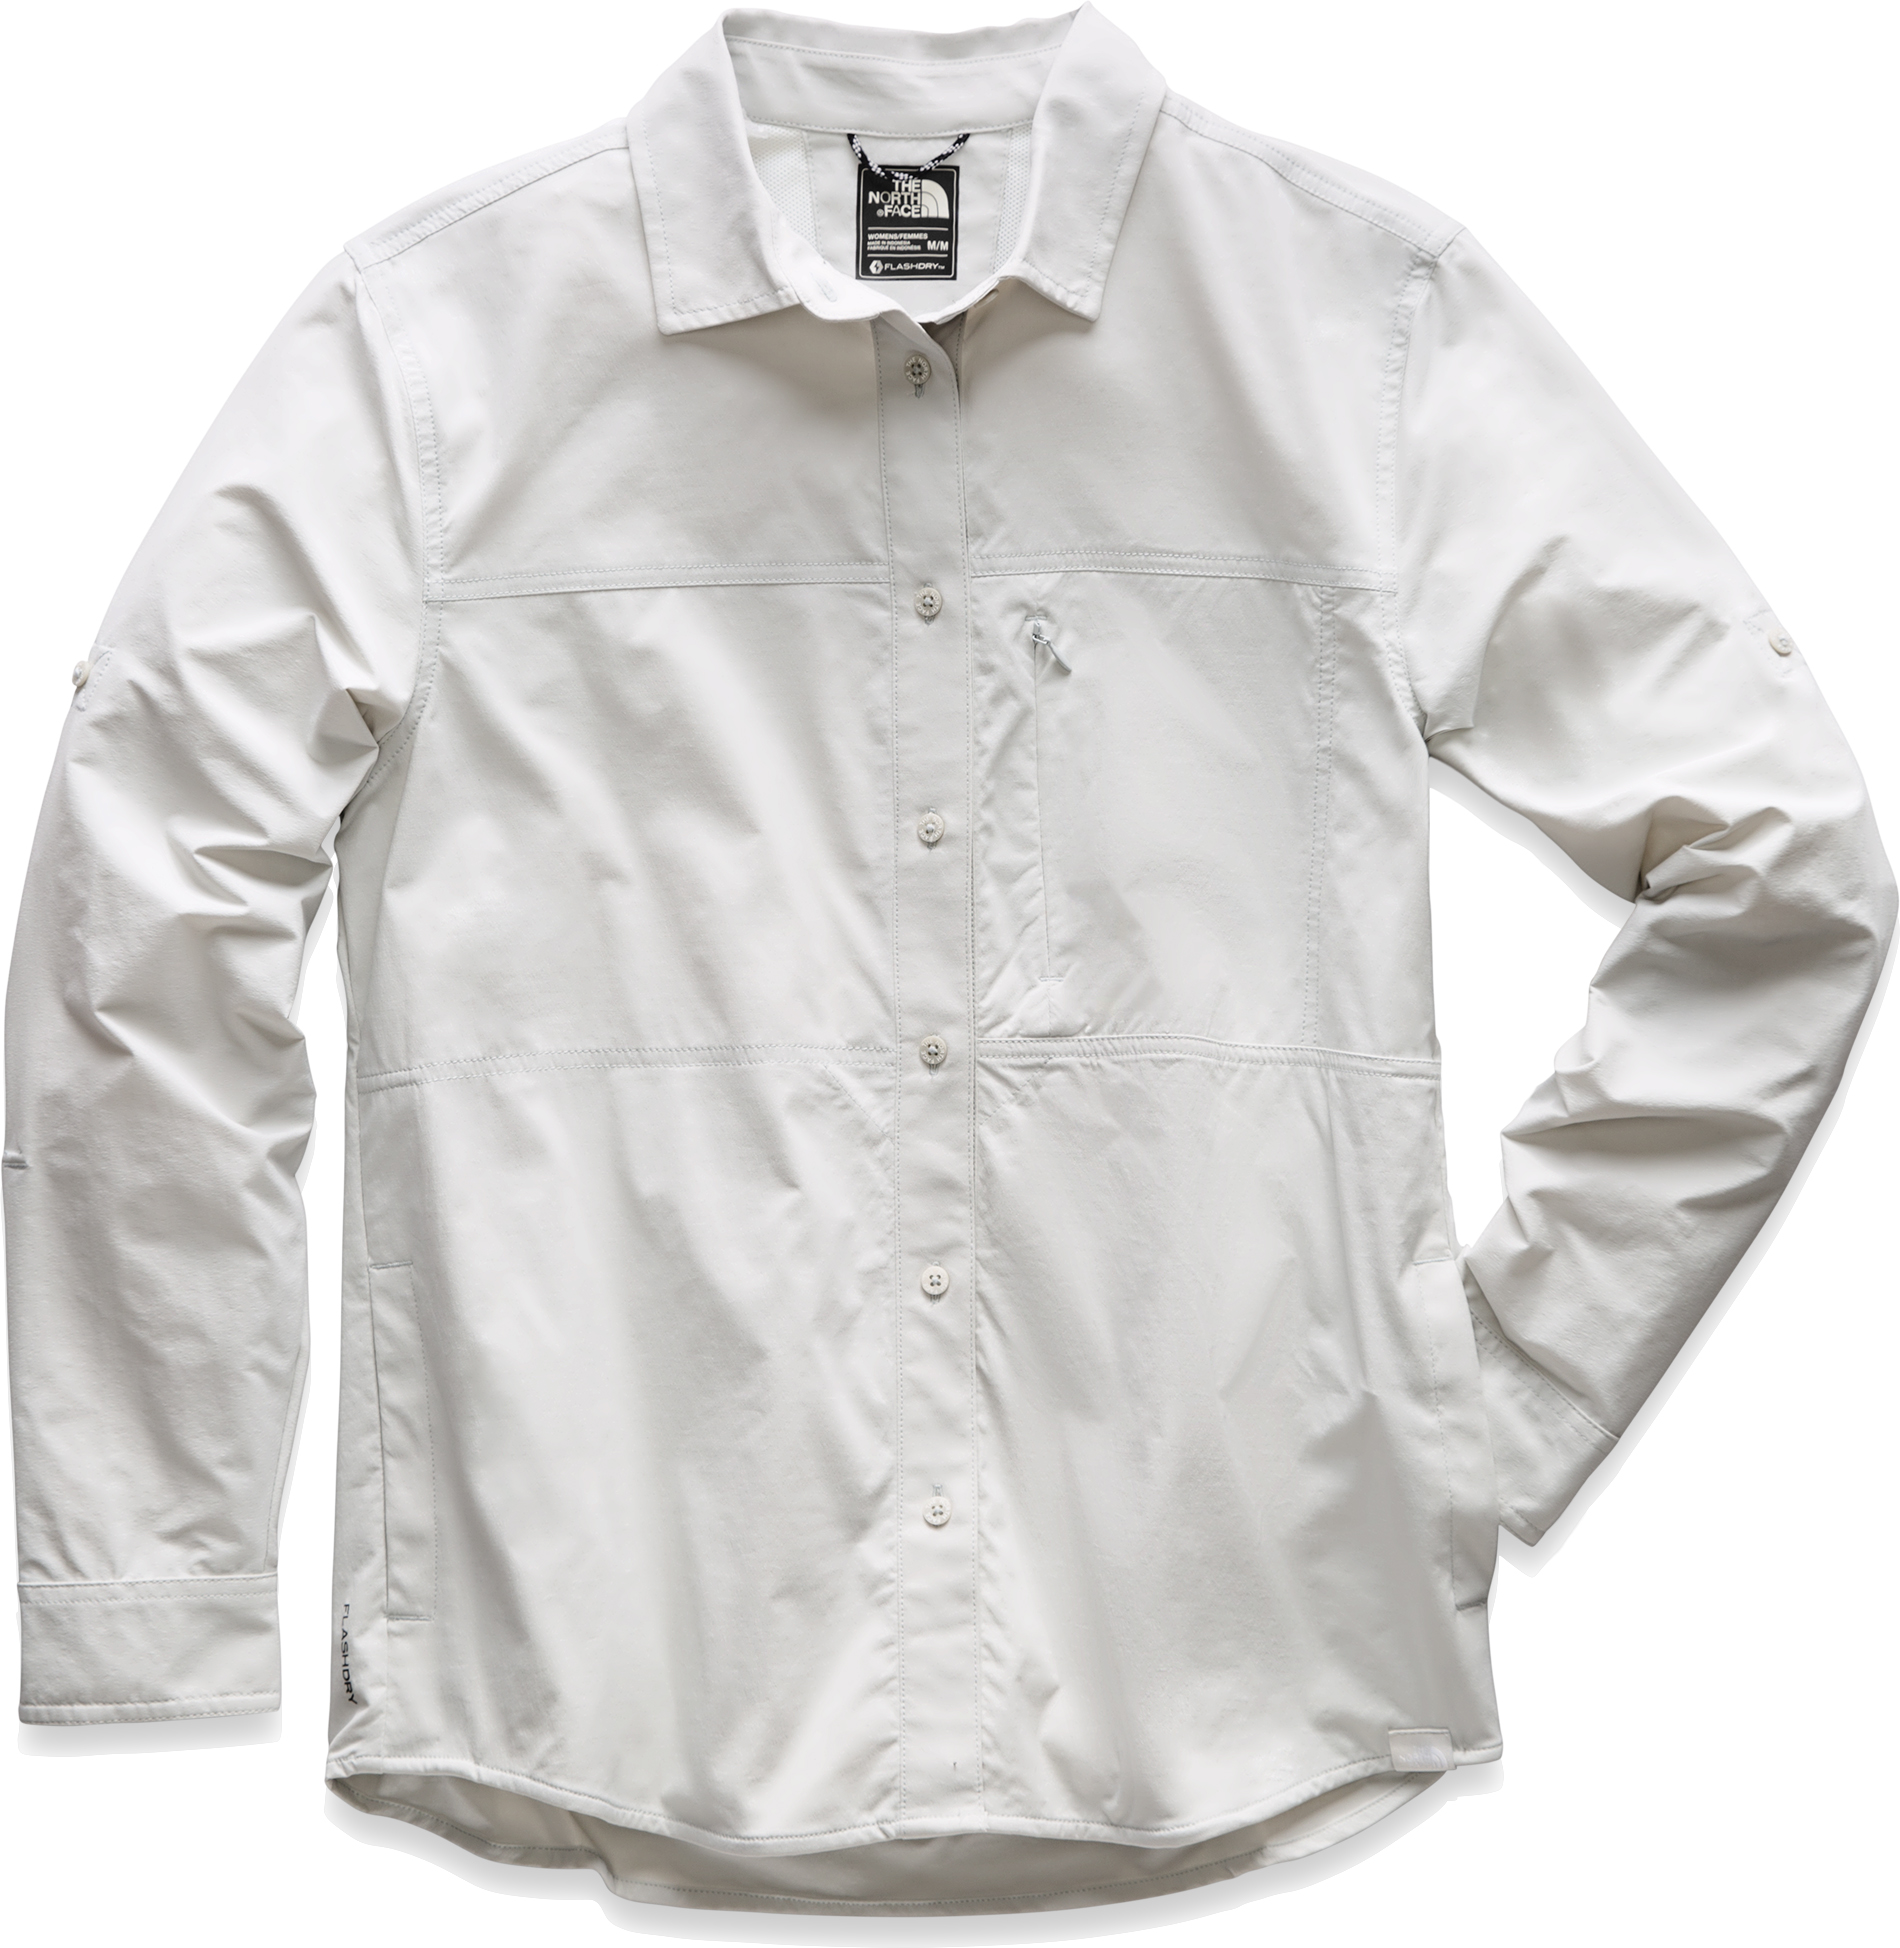 H /& M Long Sleeved Button Down Top $19.95